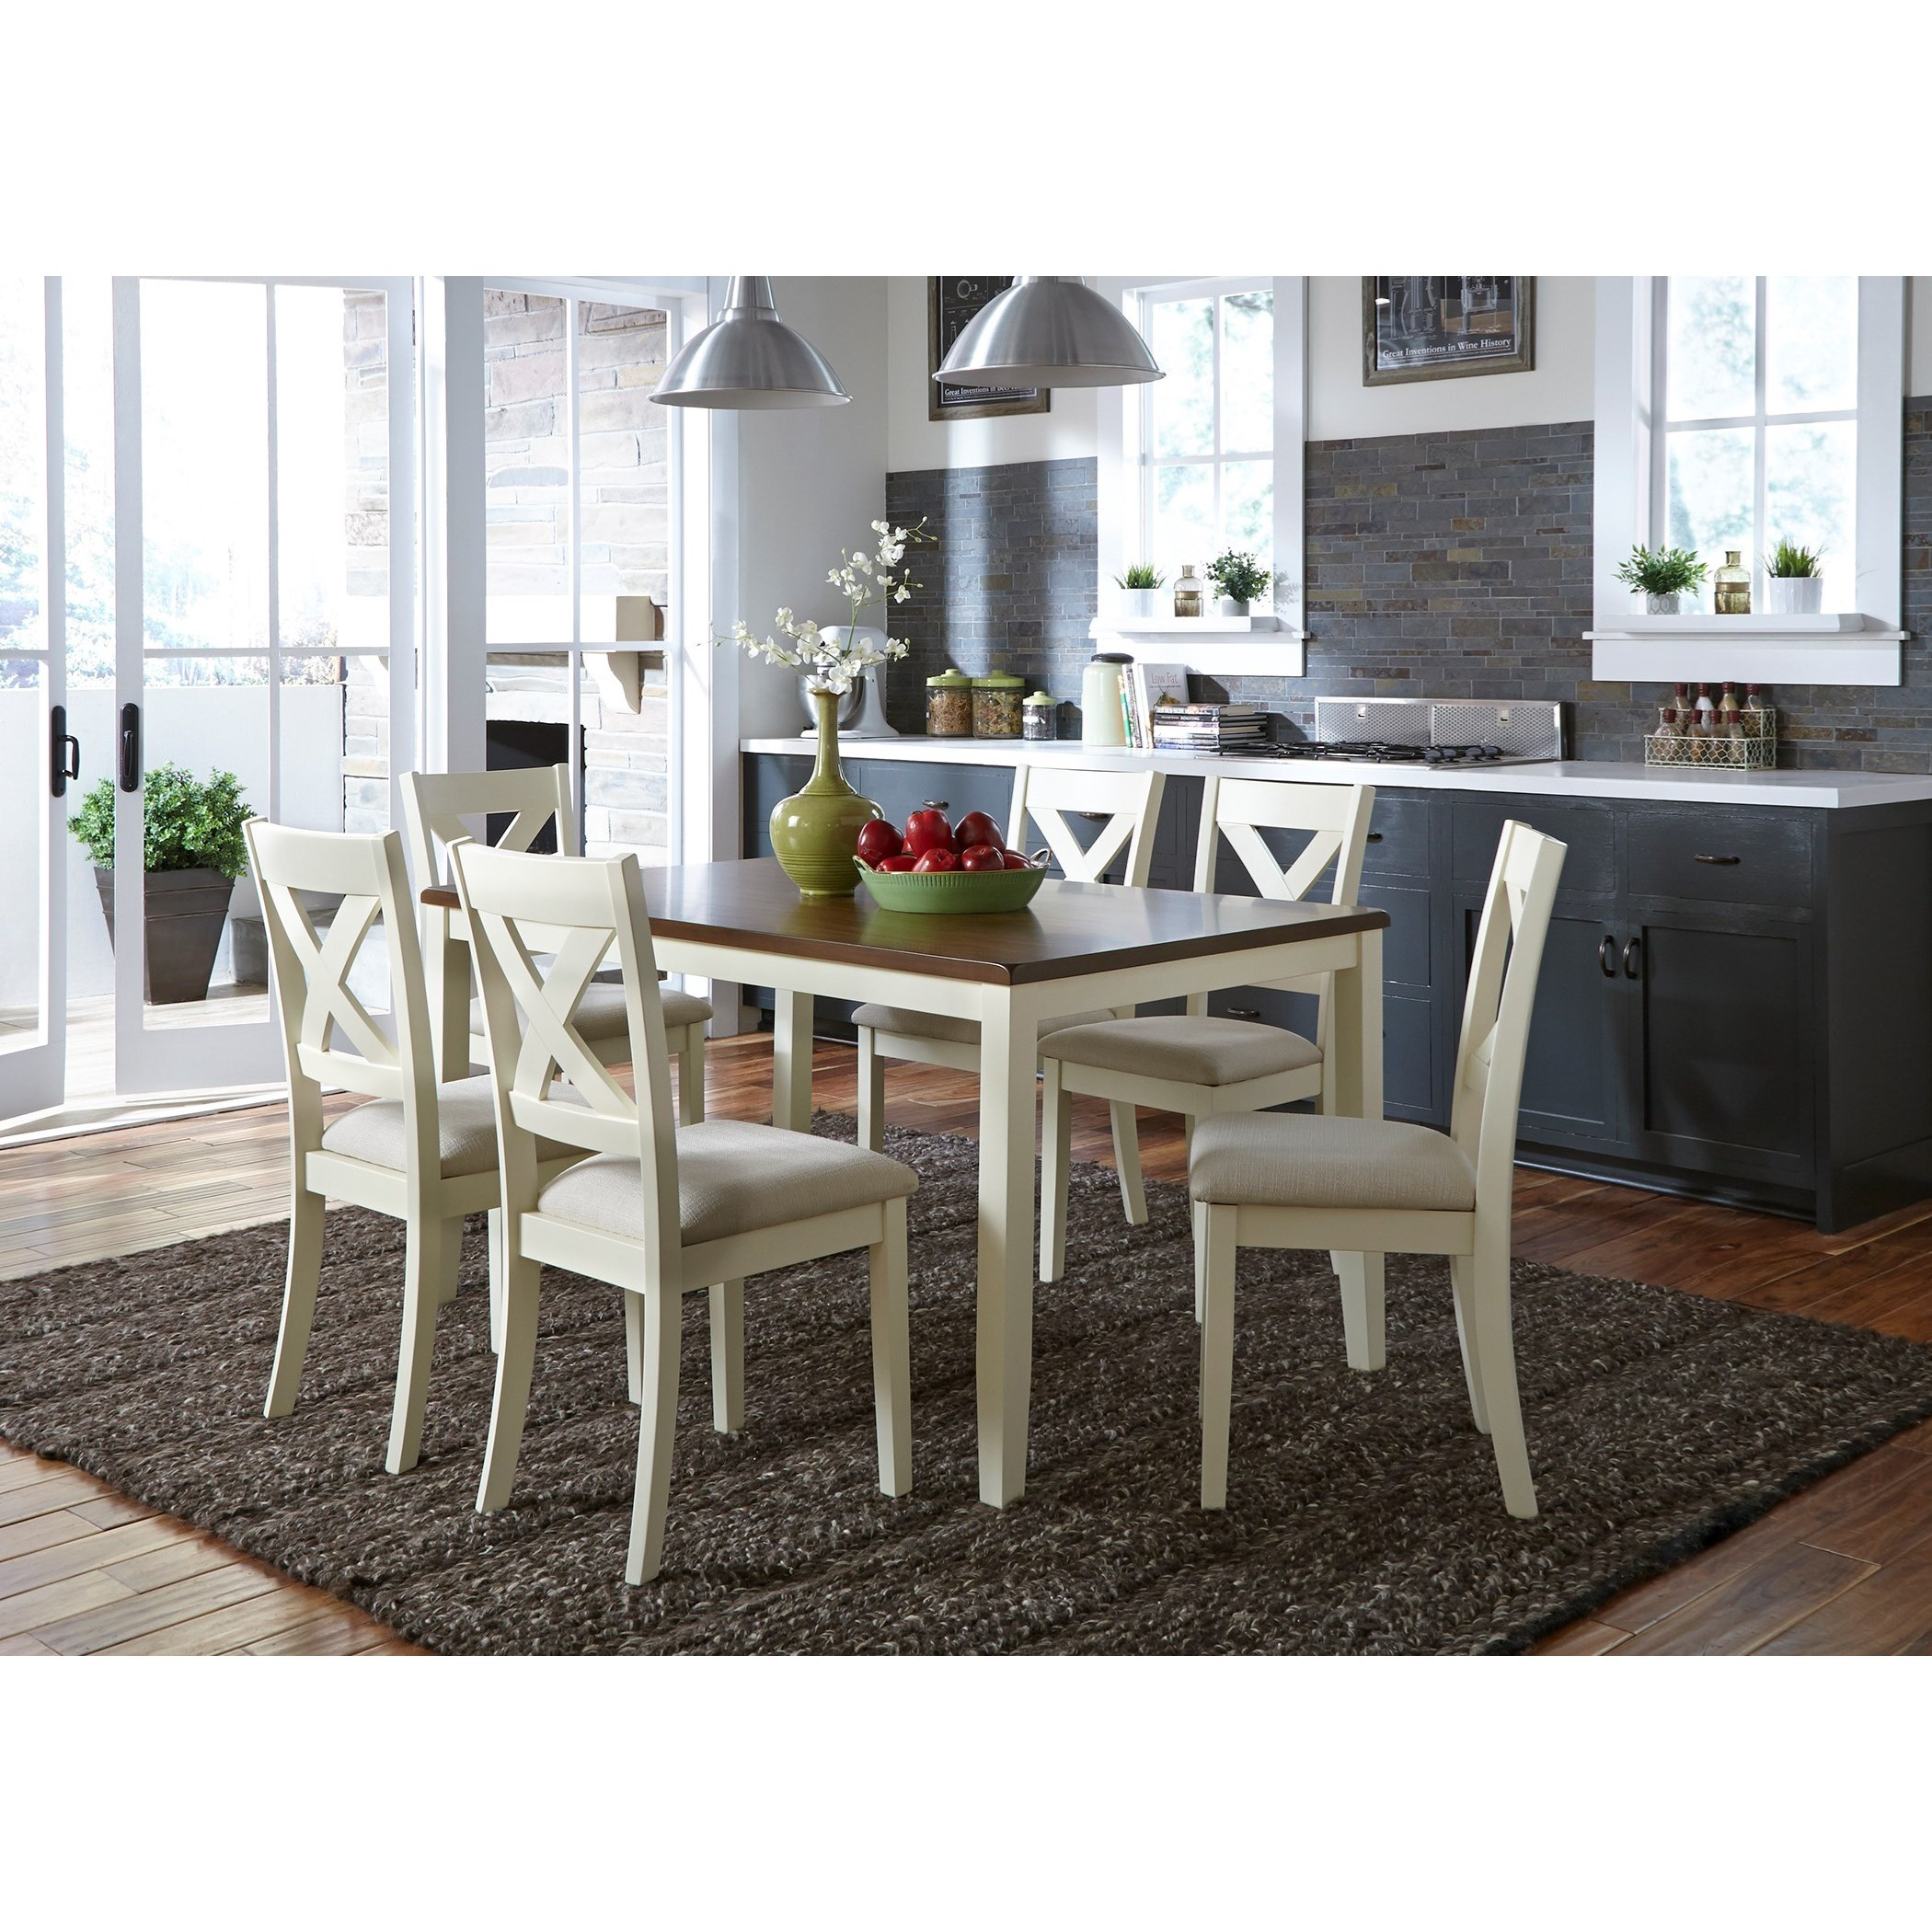 Thornton 7 Piece Rectangular Table Set by Libby at Walker's Furniture